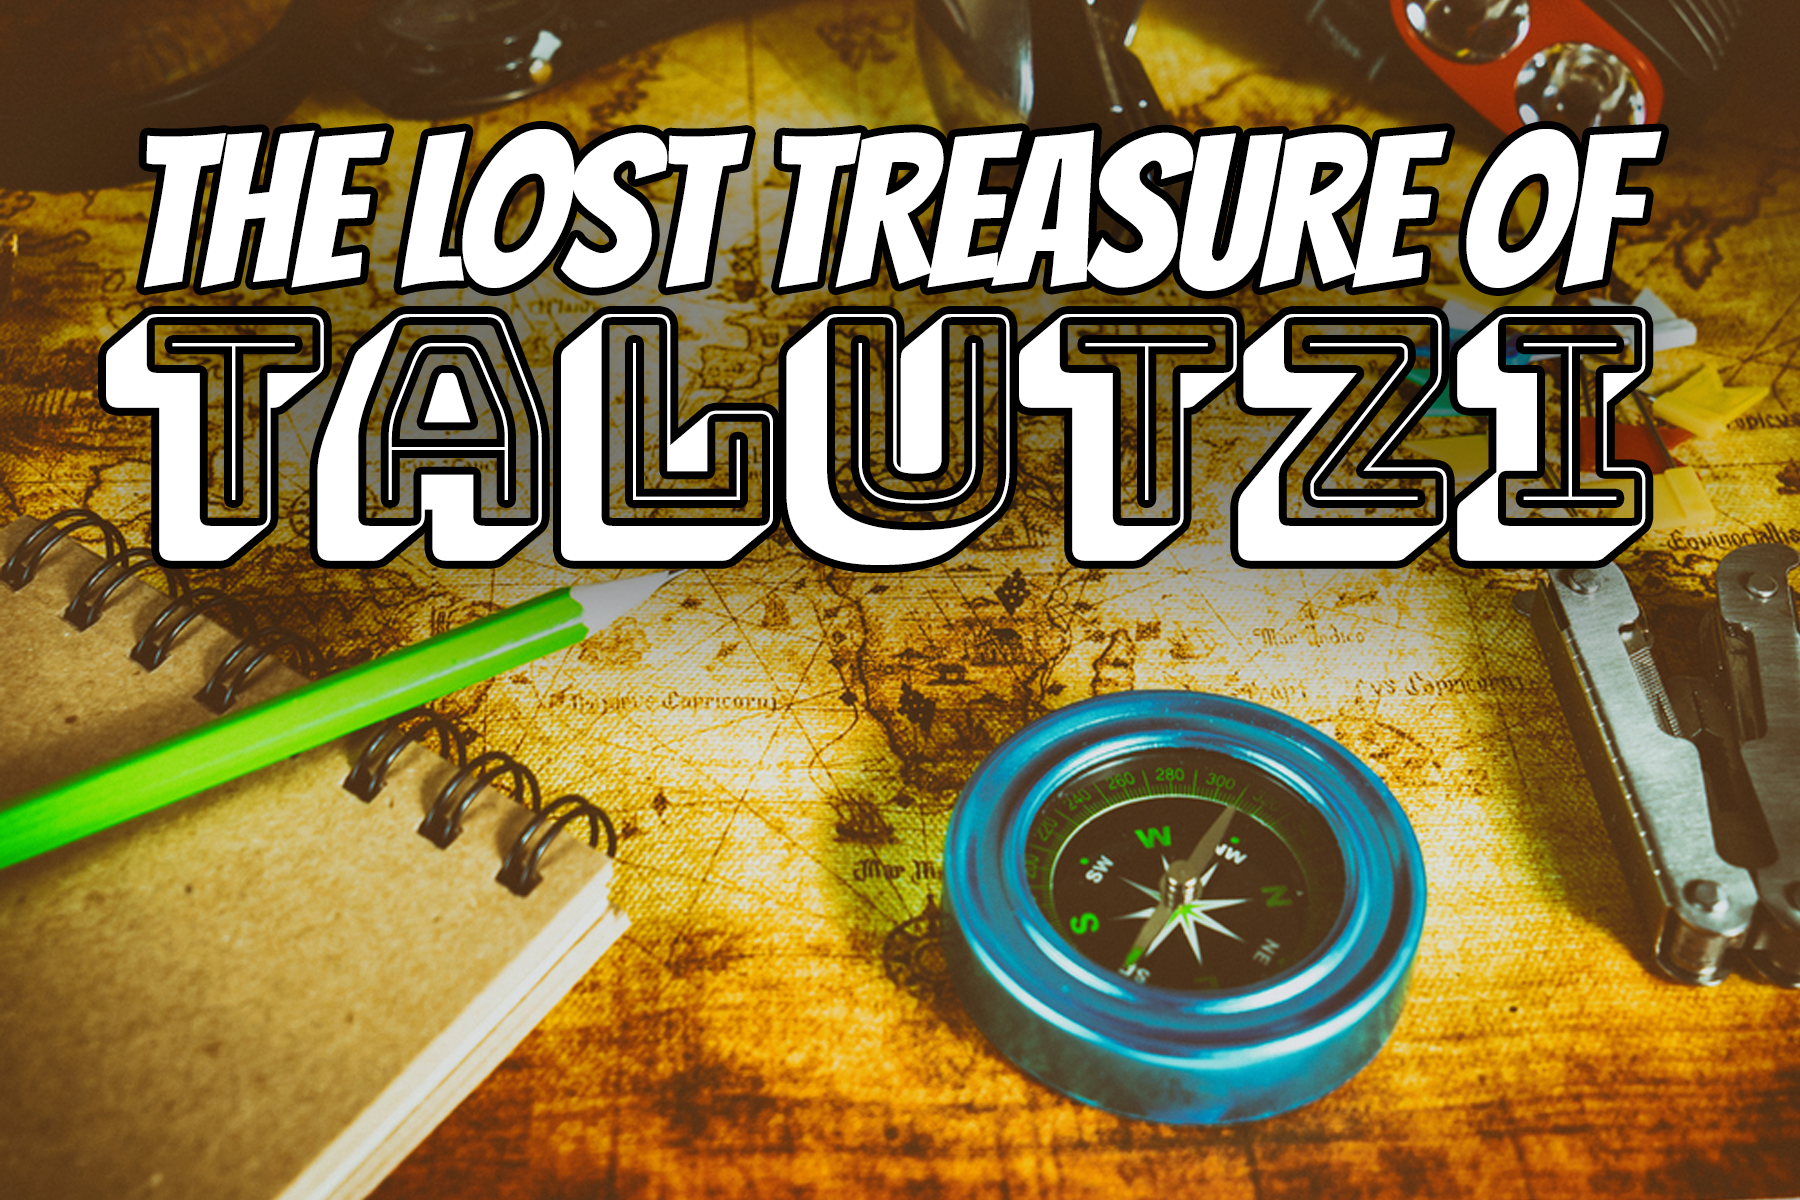 lost treasure.png